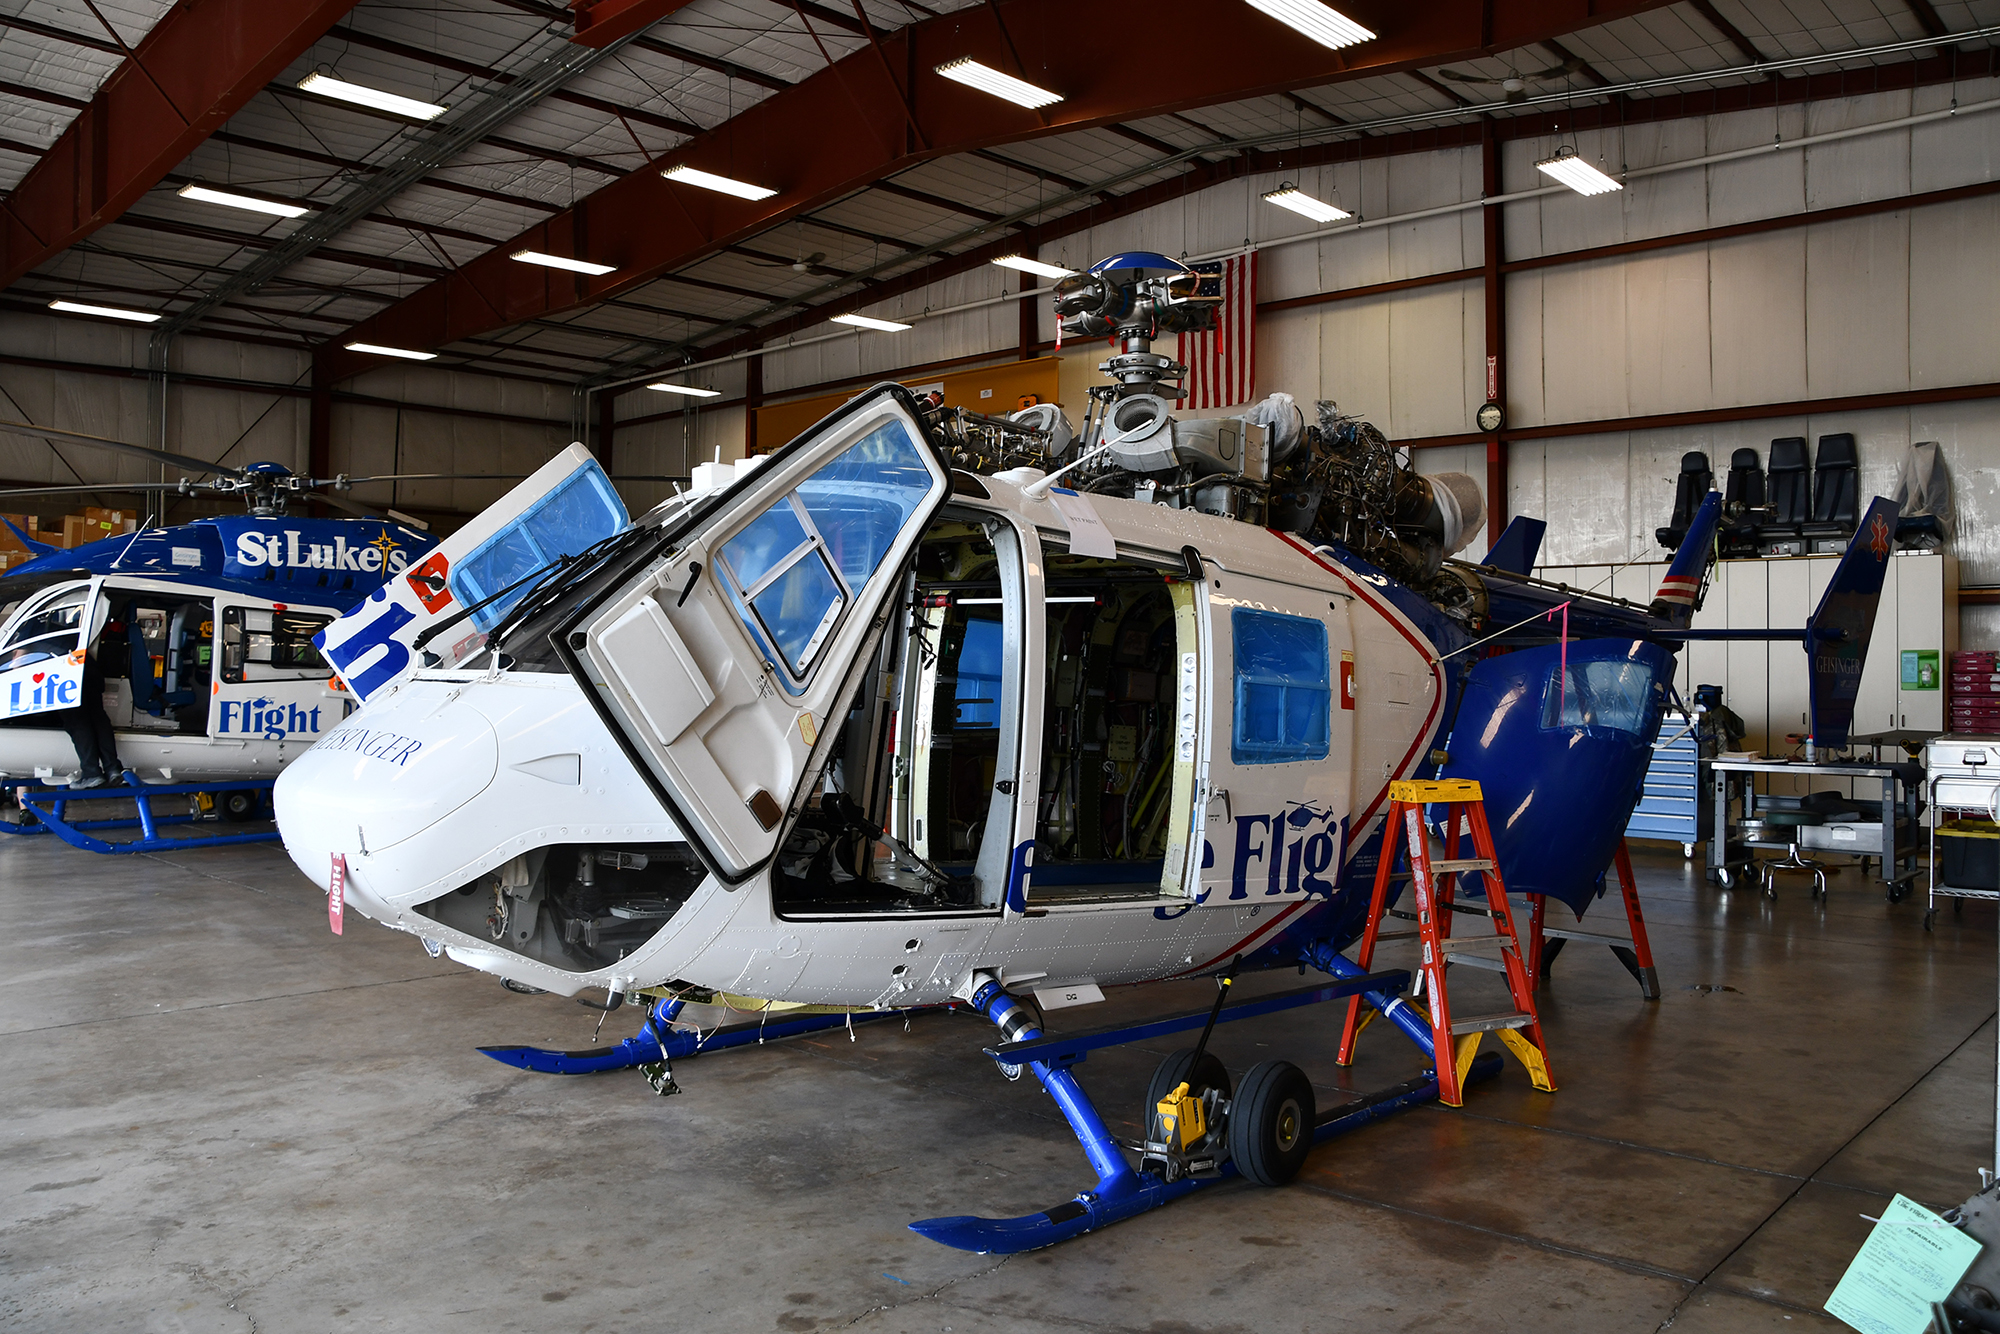 Geisinger Life Flight - BK117 Helicopter Undergoing Maintenance at Life Flight 1 base